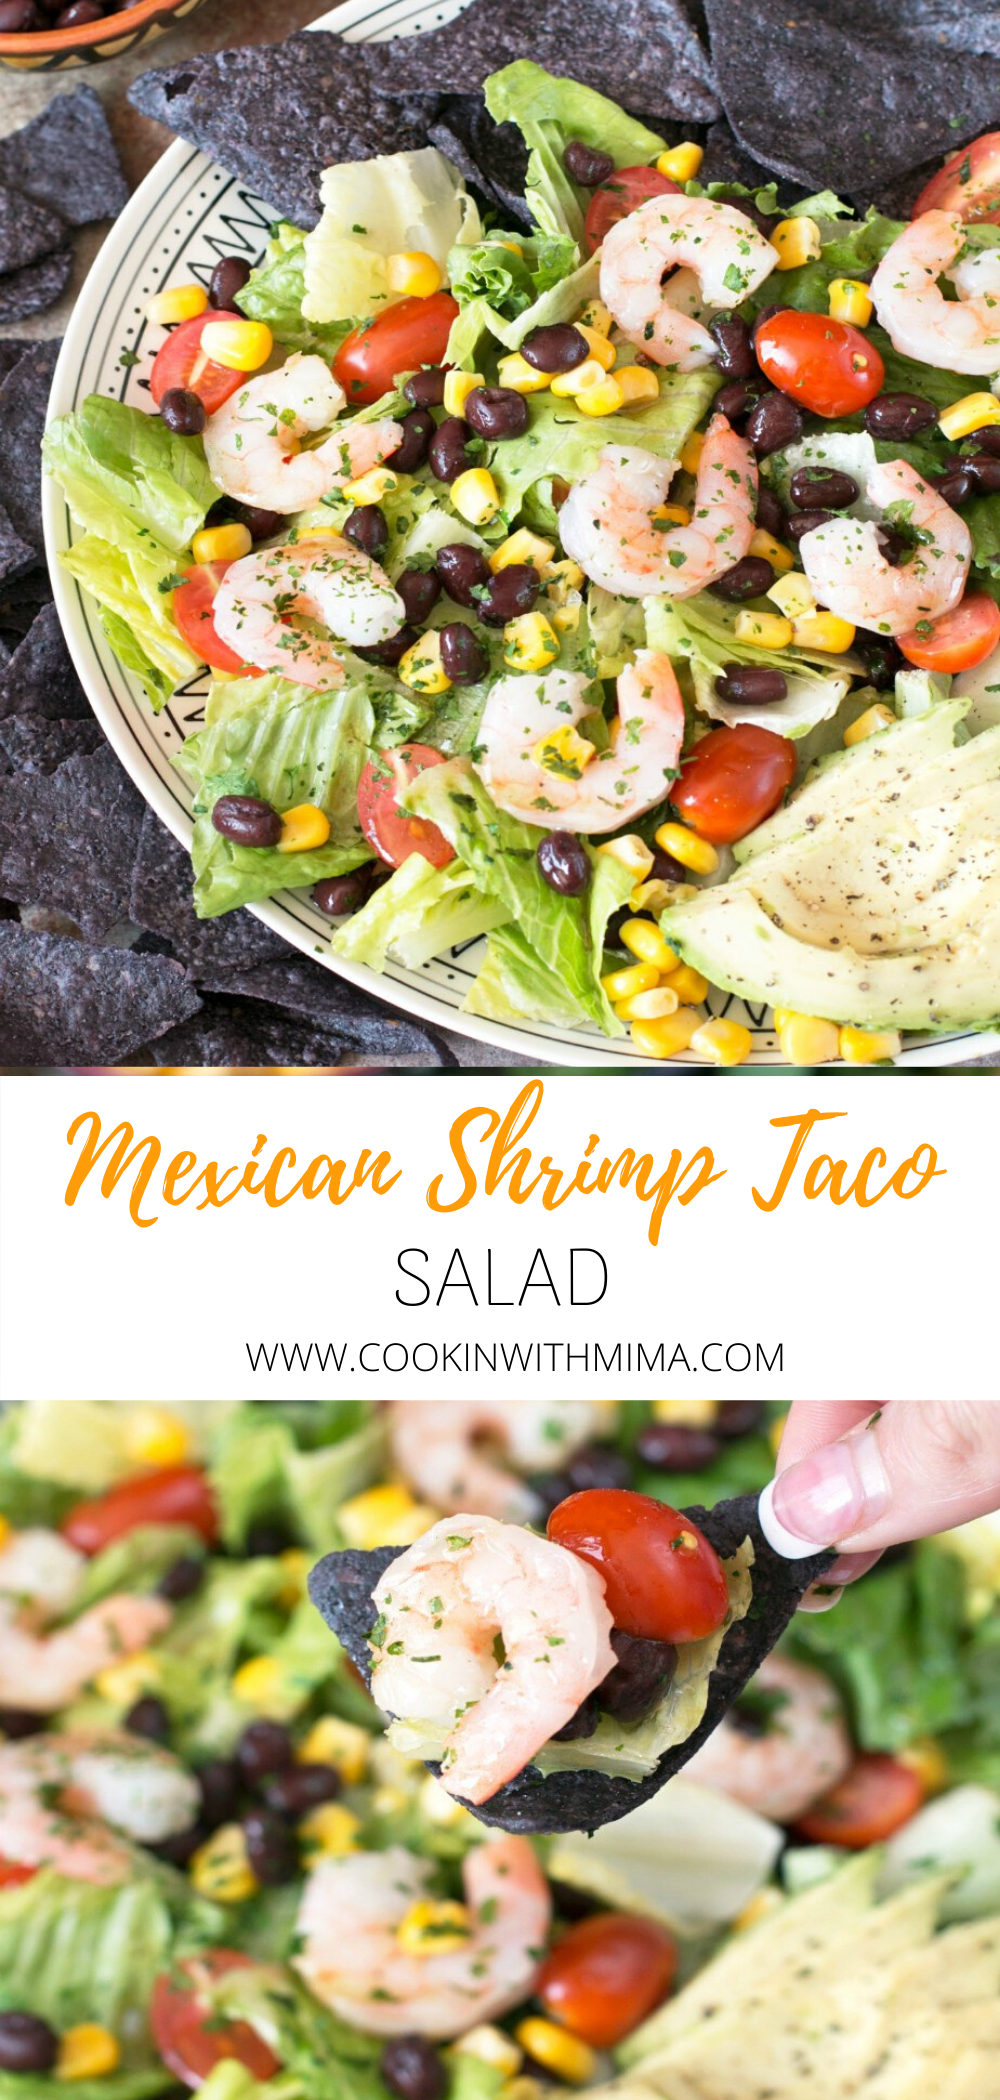 Mexican Shrimp Taco Salad Recipe Recipe In 2020 Perfect Salad Recipe Taco Salad Salad